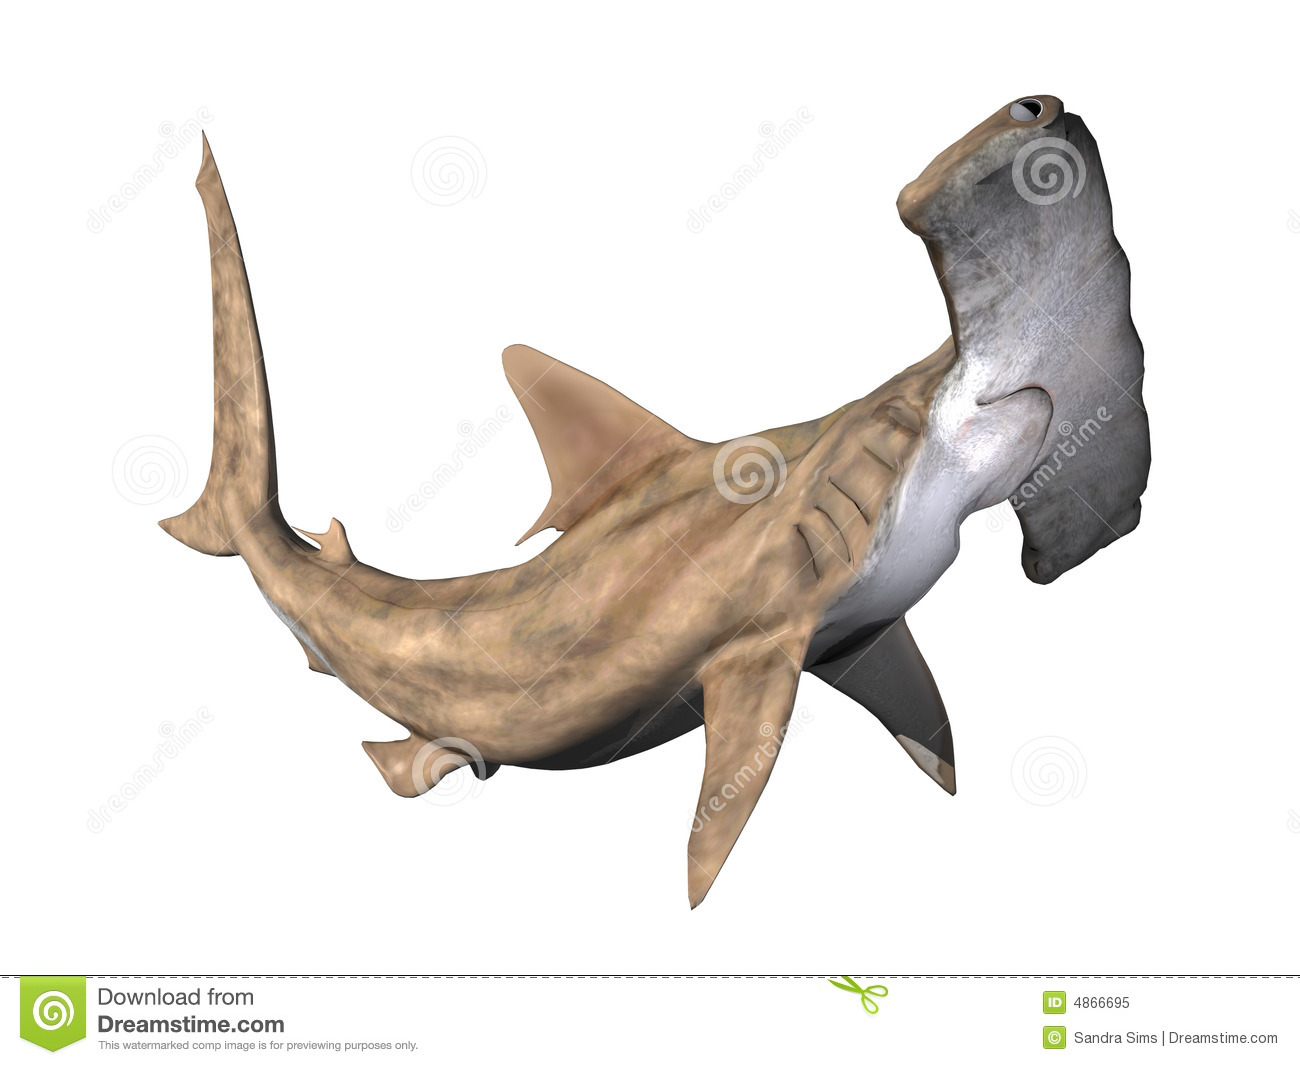 Hammerhead Shark clipart #11, Download drawings